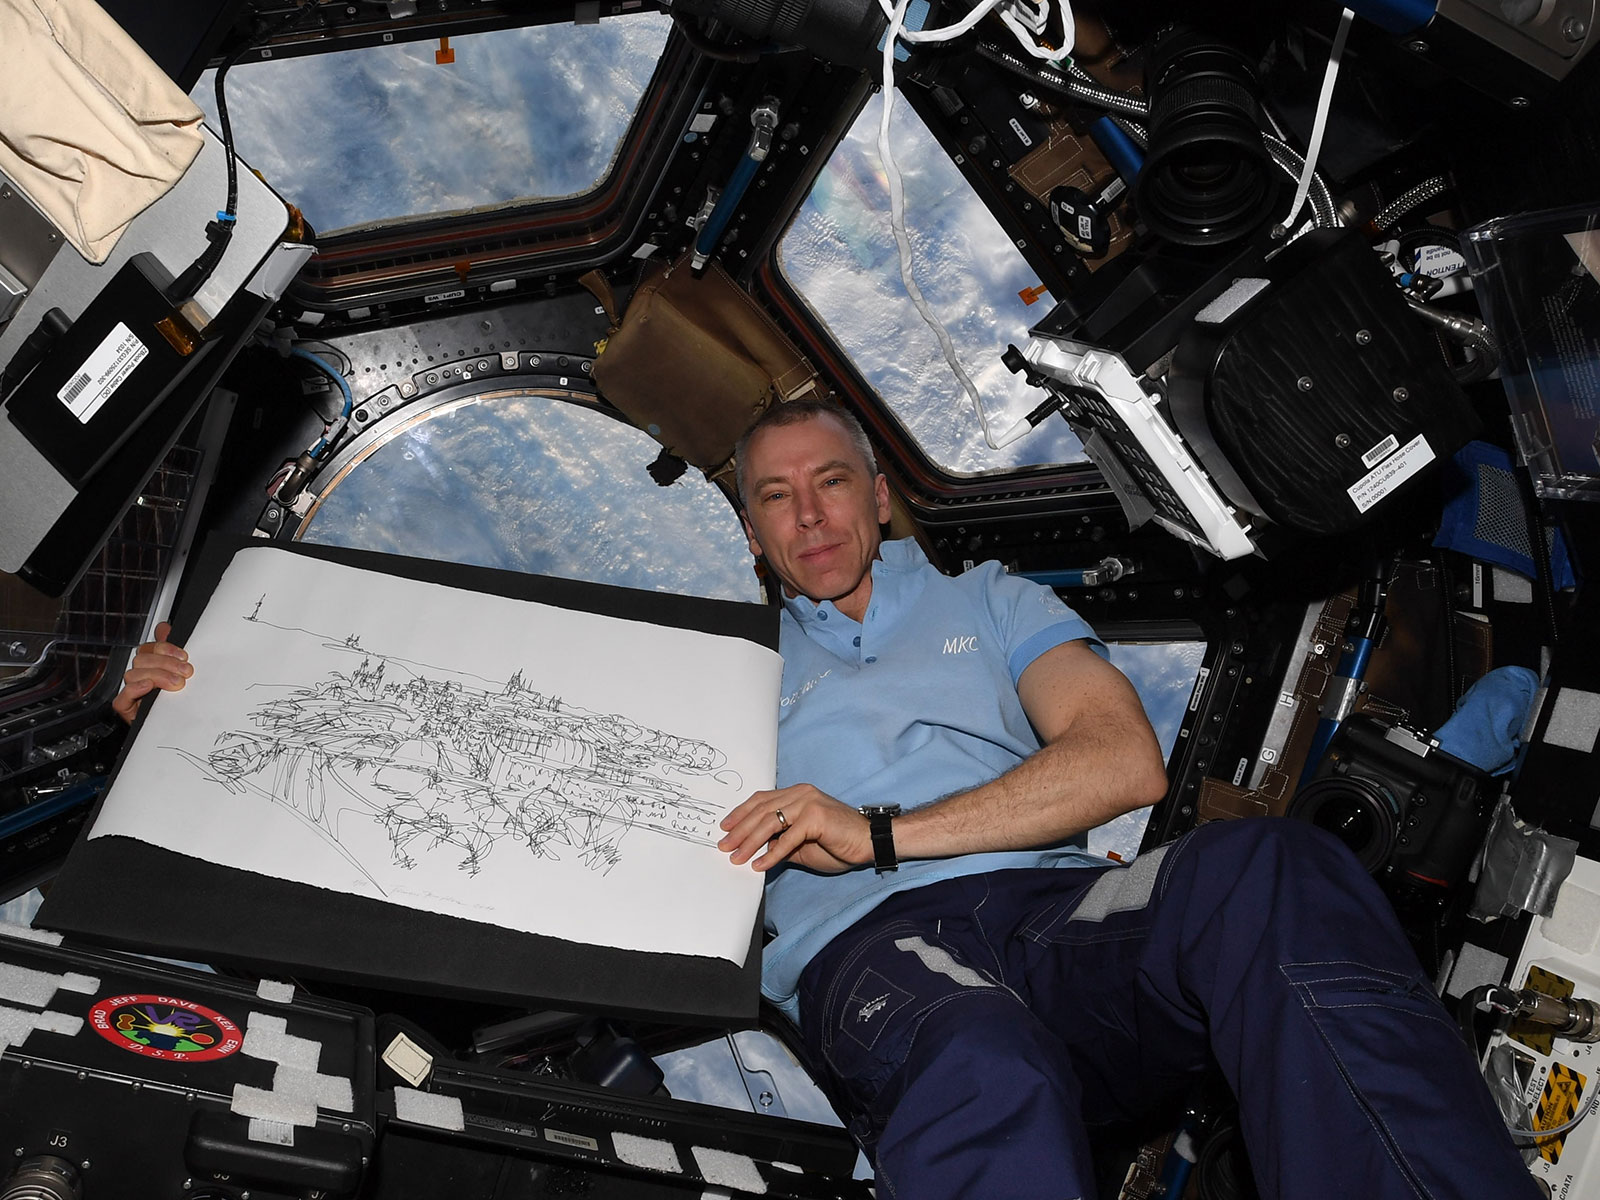 Simona Brejcha's Artwork on ISS - Drew Feustel